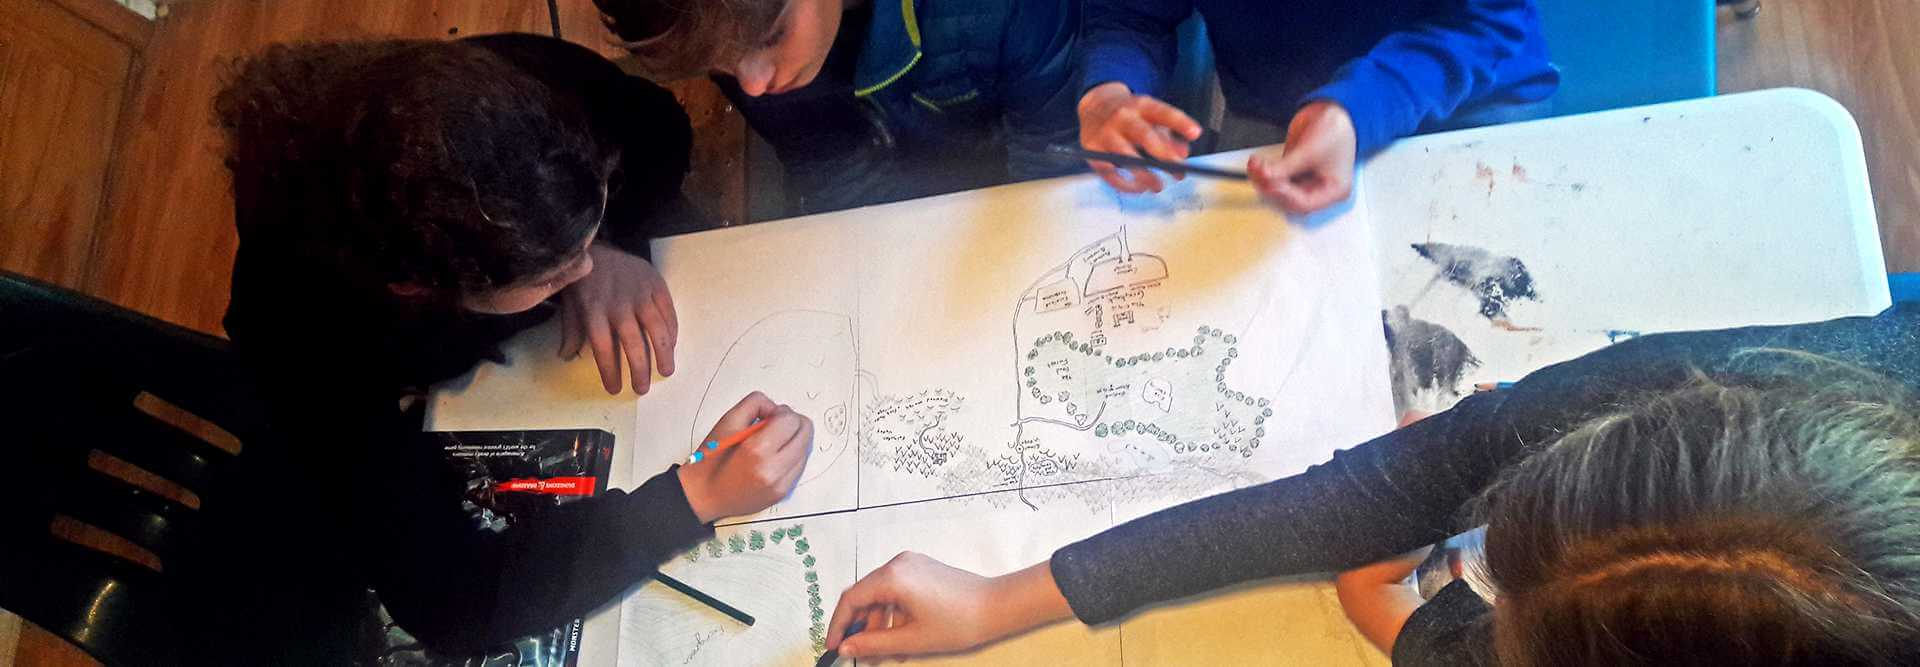 young people drawing